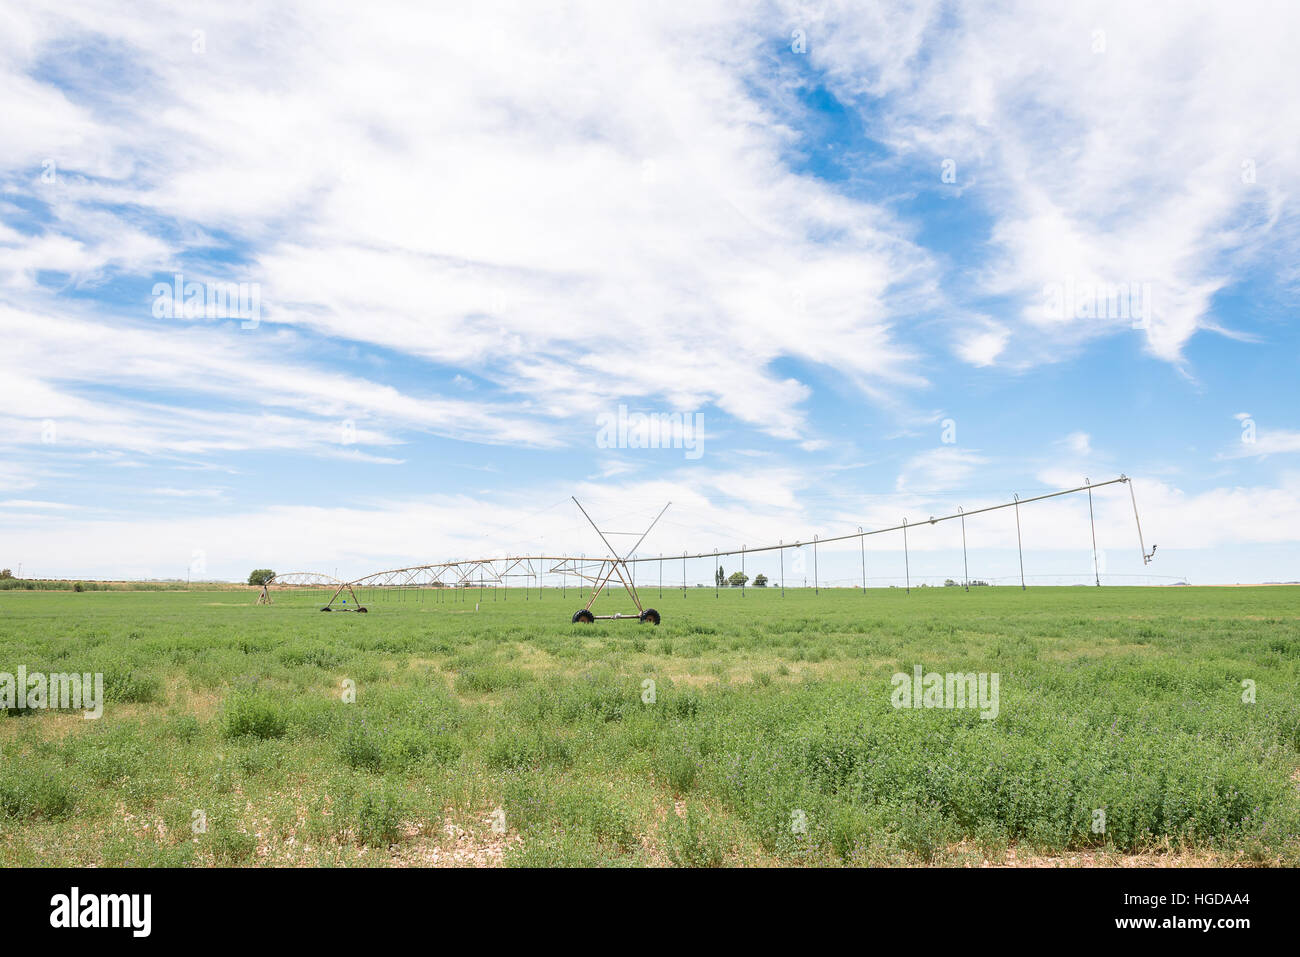 A center pivot irrigation system in a lucerne field using rotator style pivot applicator sprinklers near Jacobsdal - Stock Image